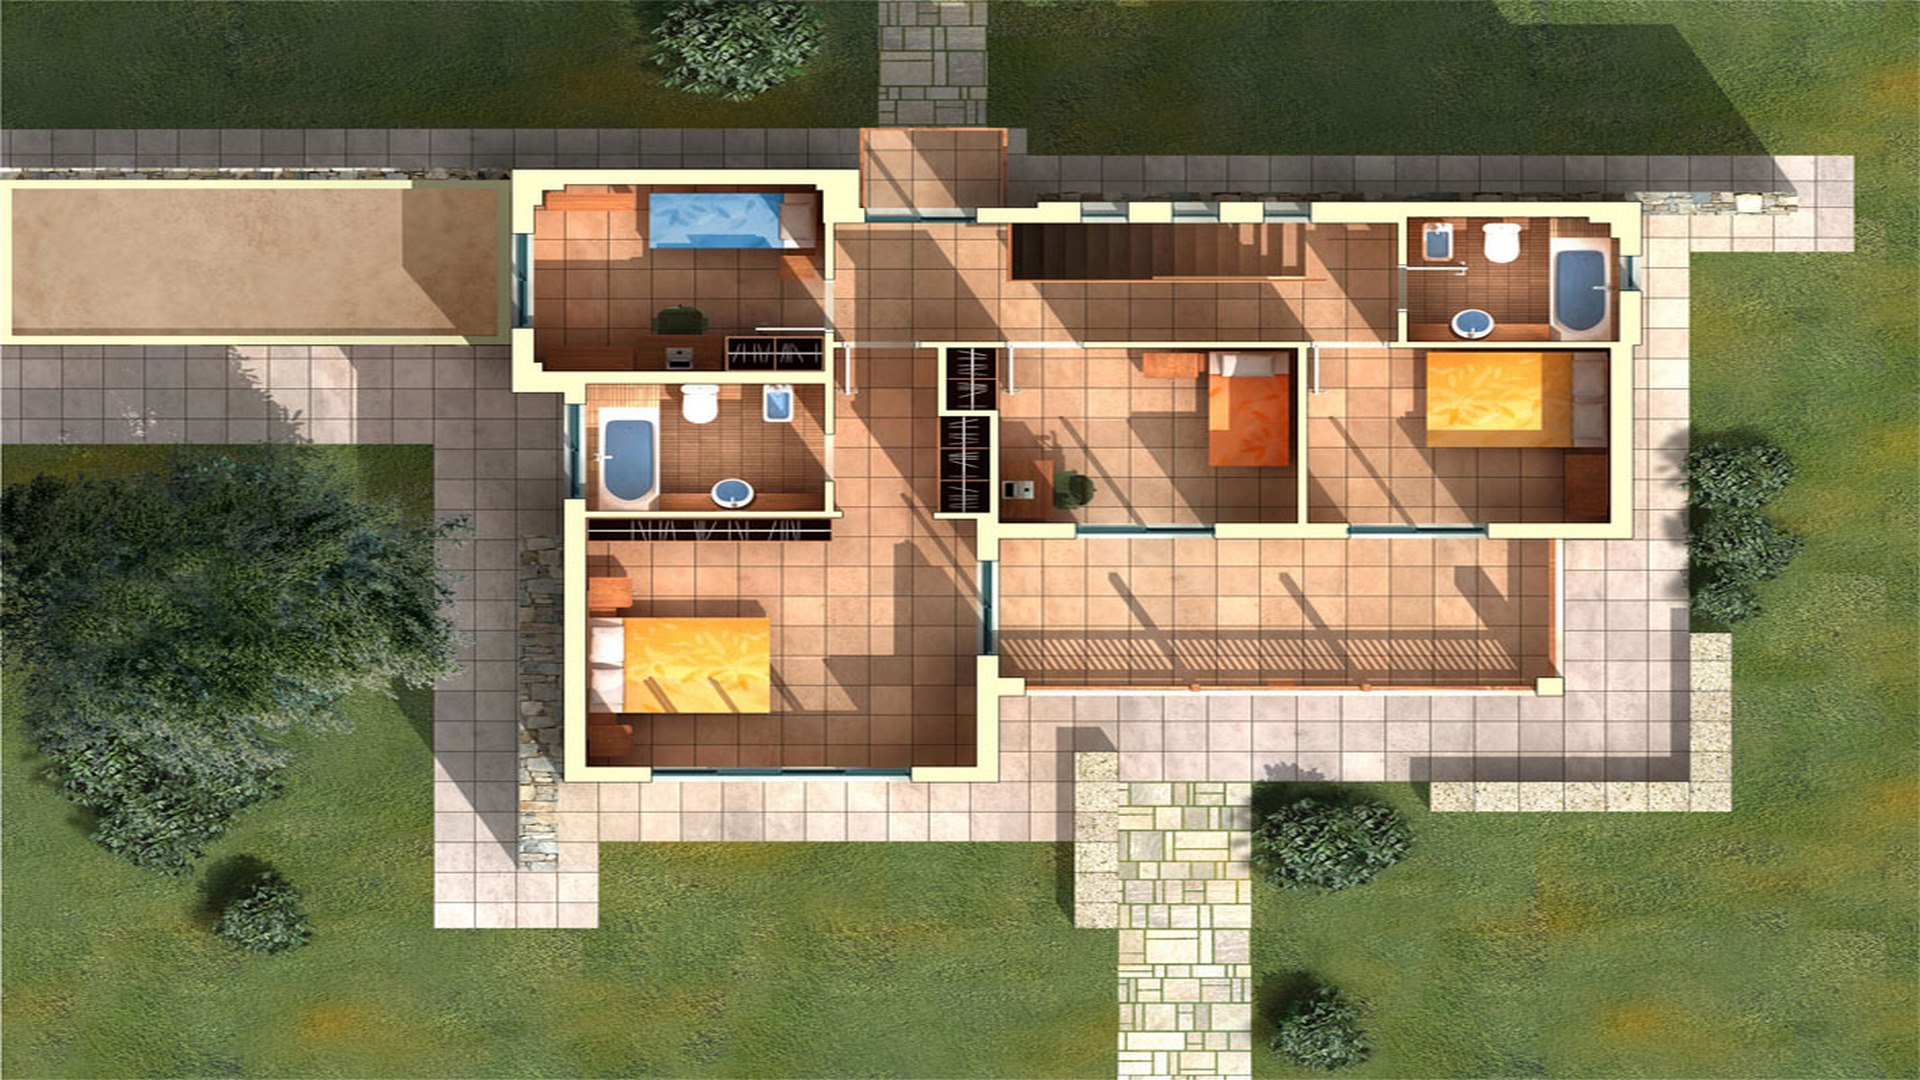 House Type A: First Floor